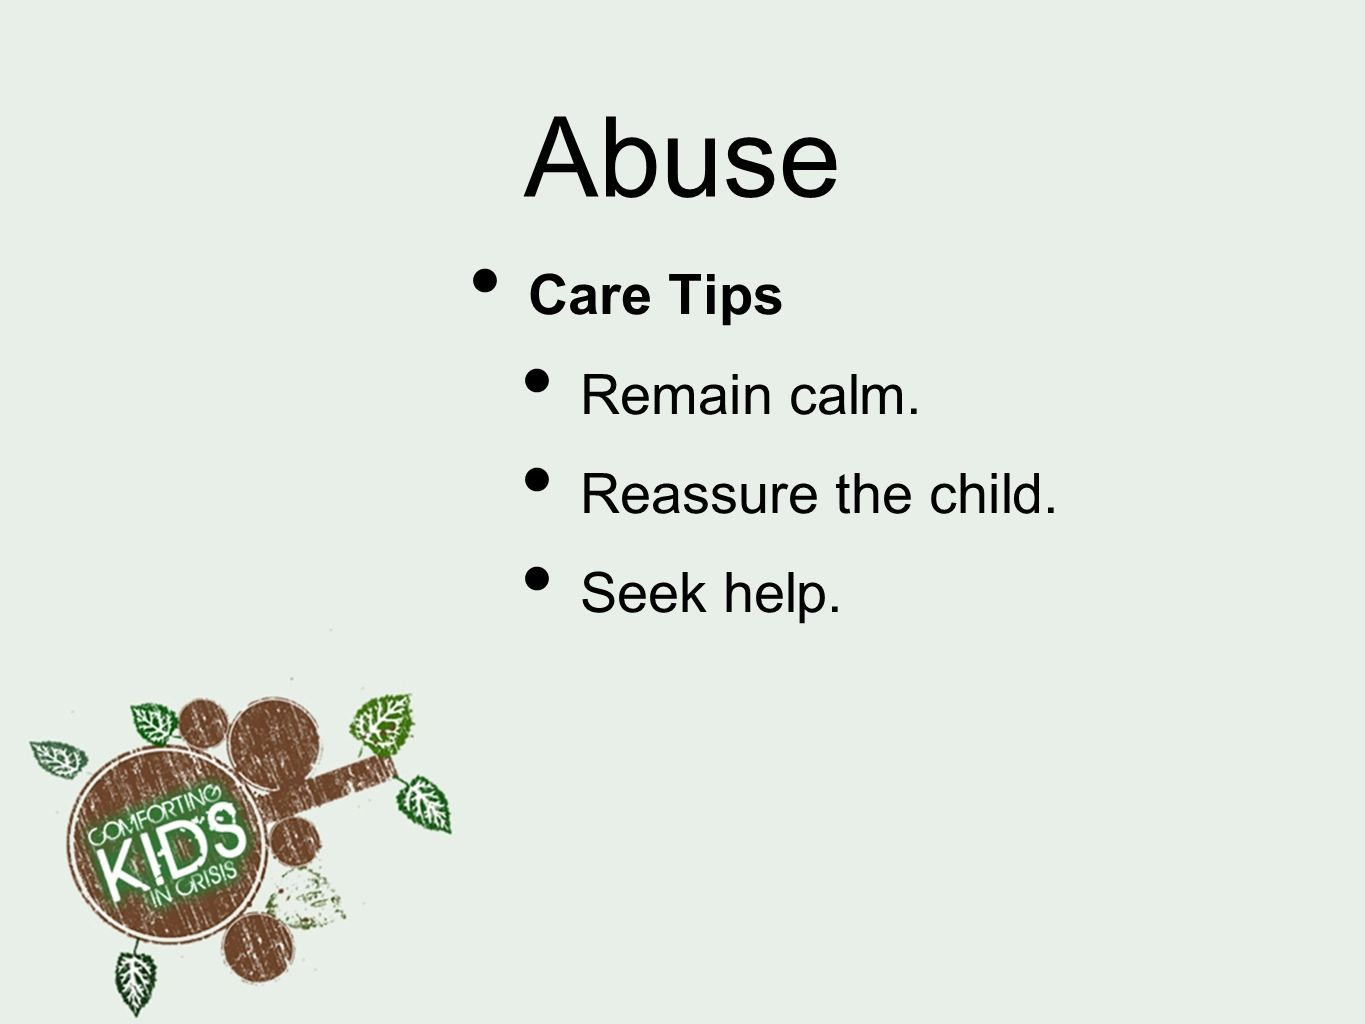 Abuse Care Tips Remain calm. Reassure the child. Seek help.